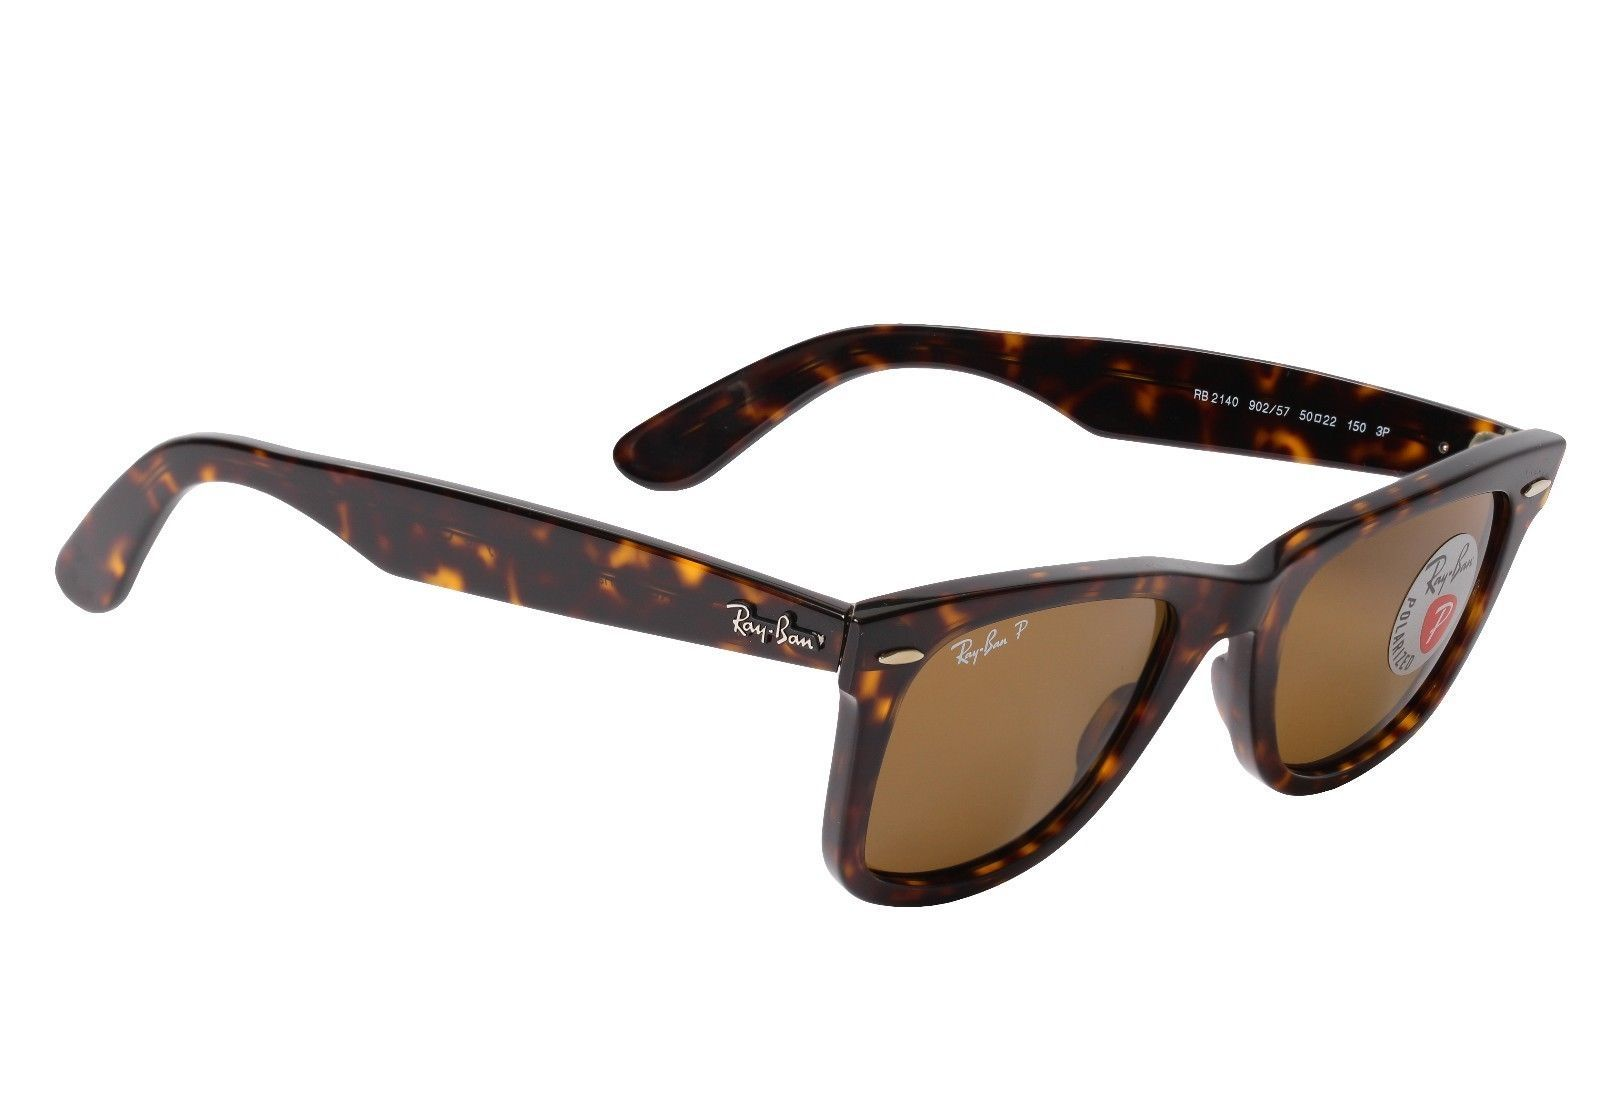 bf99a0649aed ... best new ray ban tortoise wayfarer polarized sunglasses rb2140 902 57  50mm b83b8 d19ea